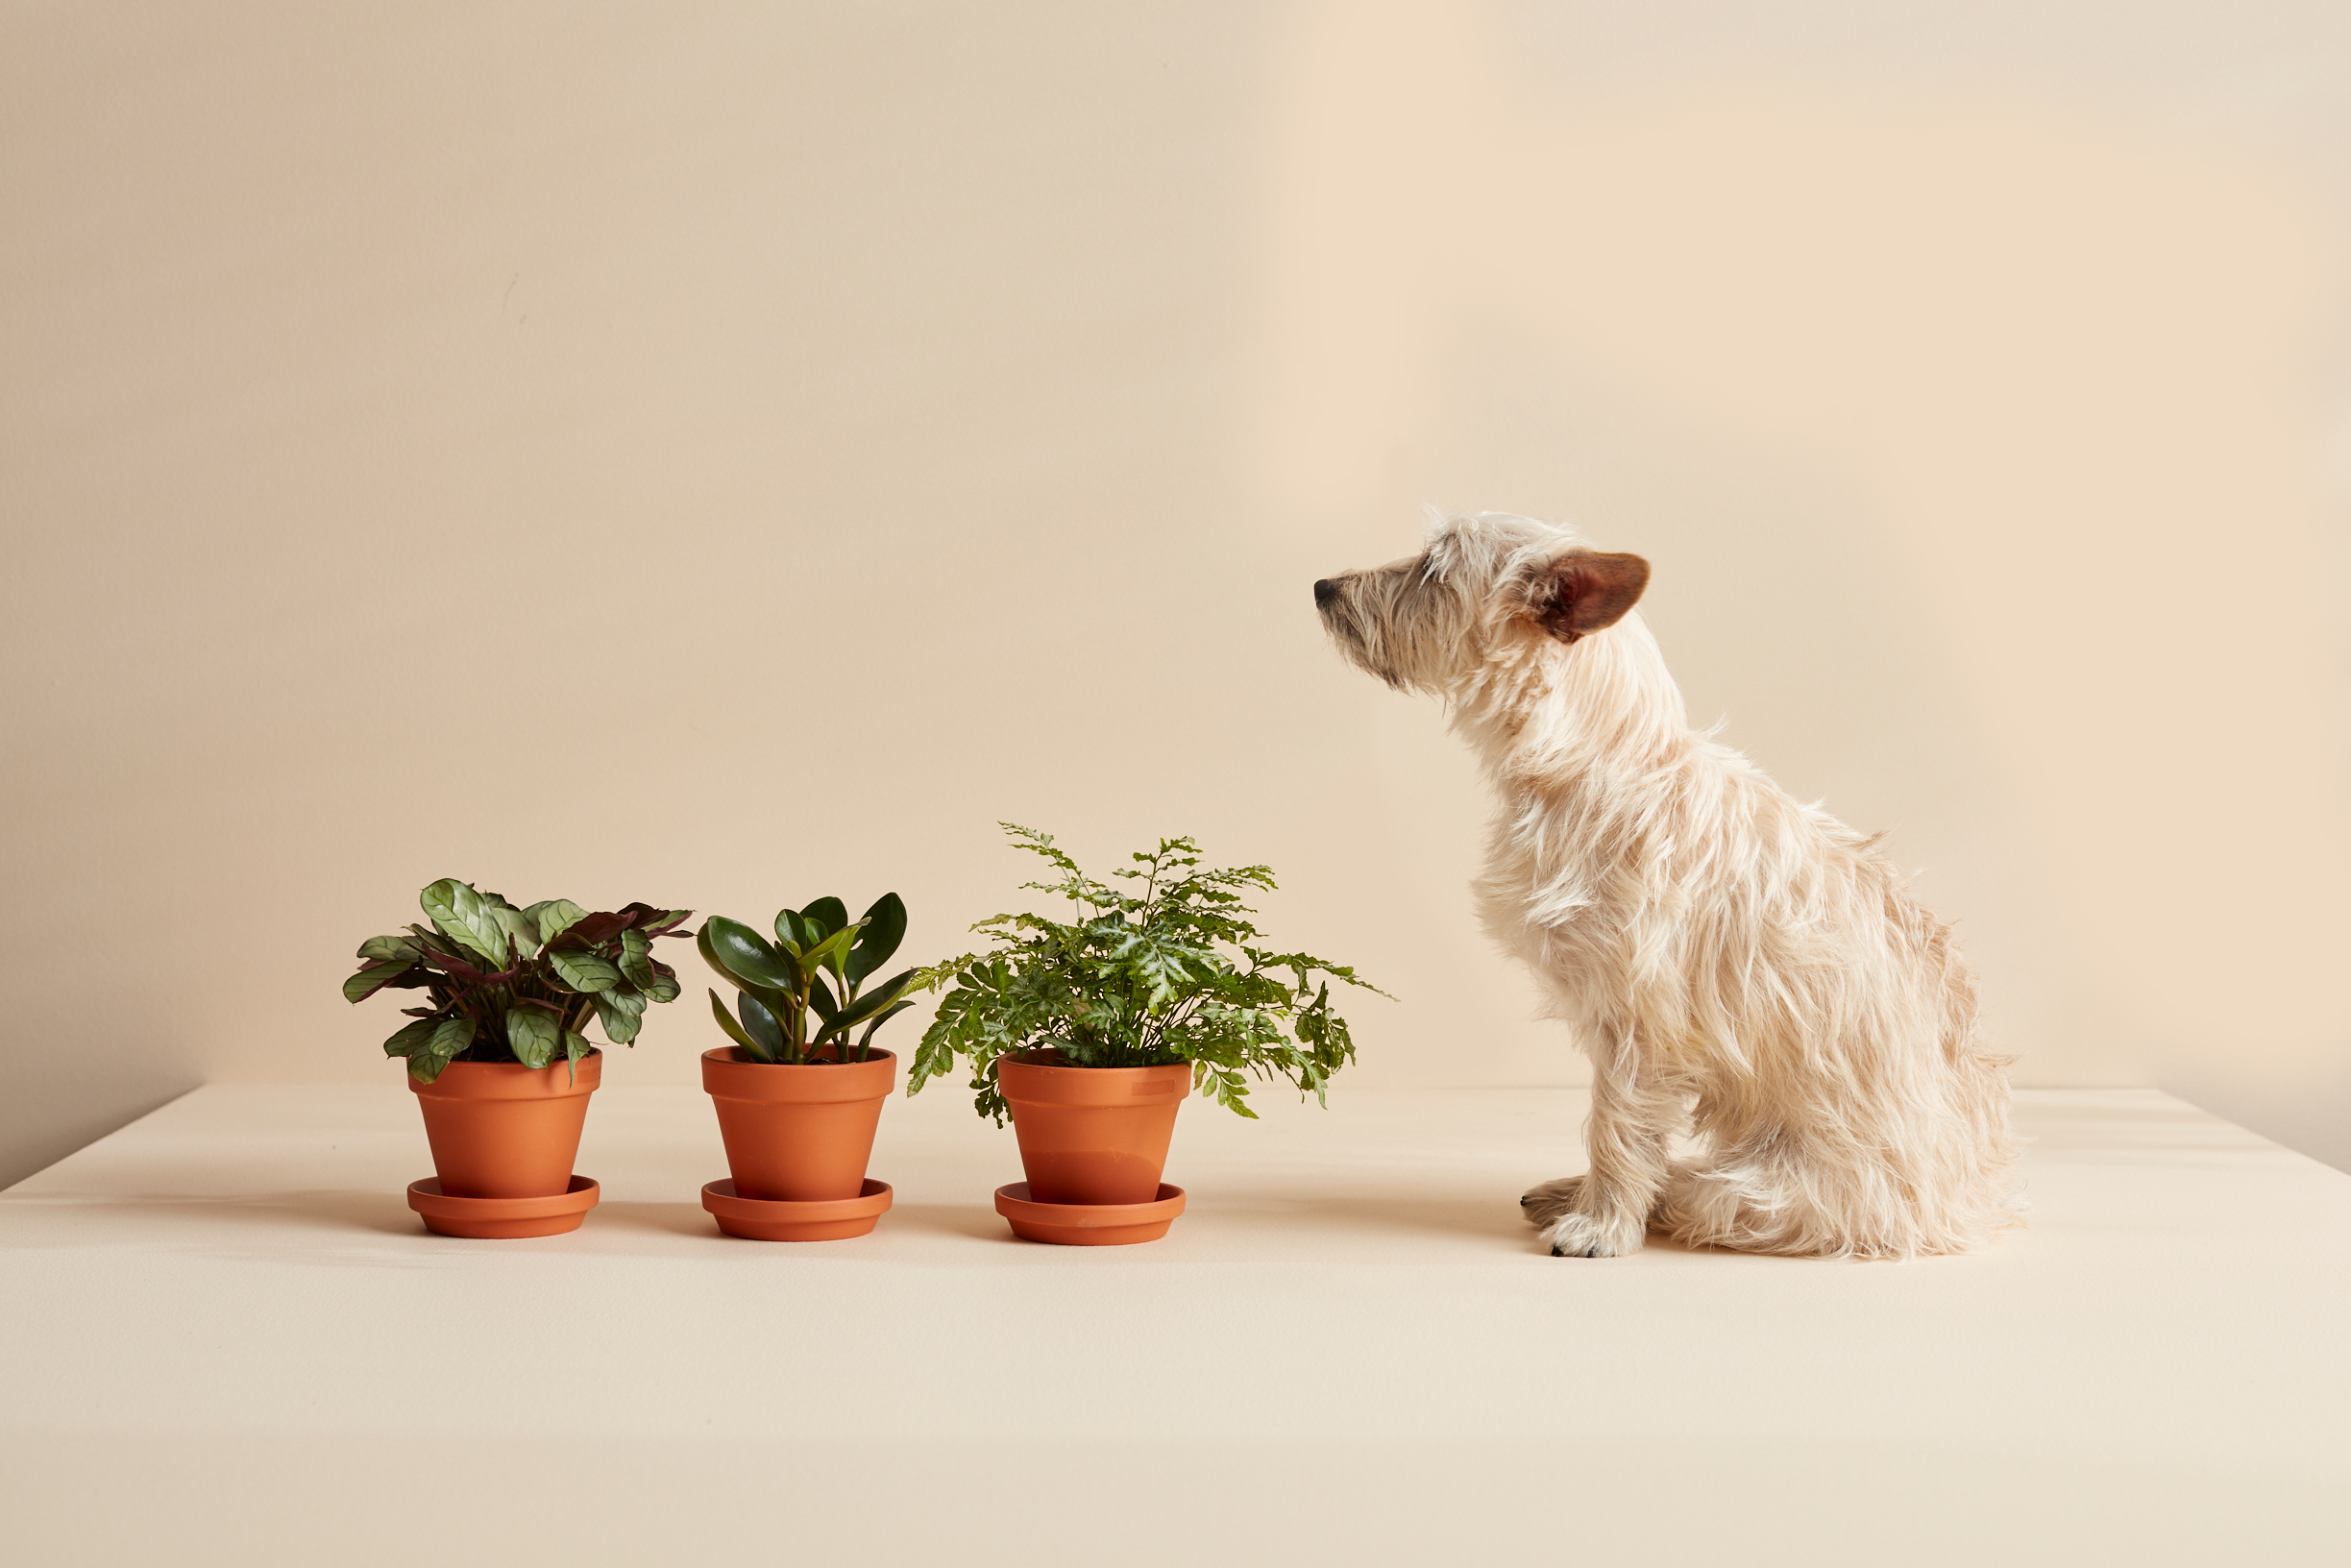 Dog sitting next to three potted plants.